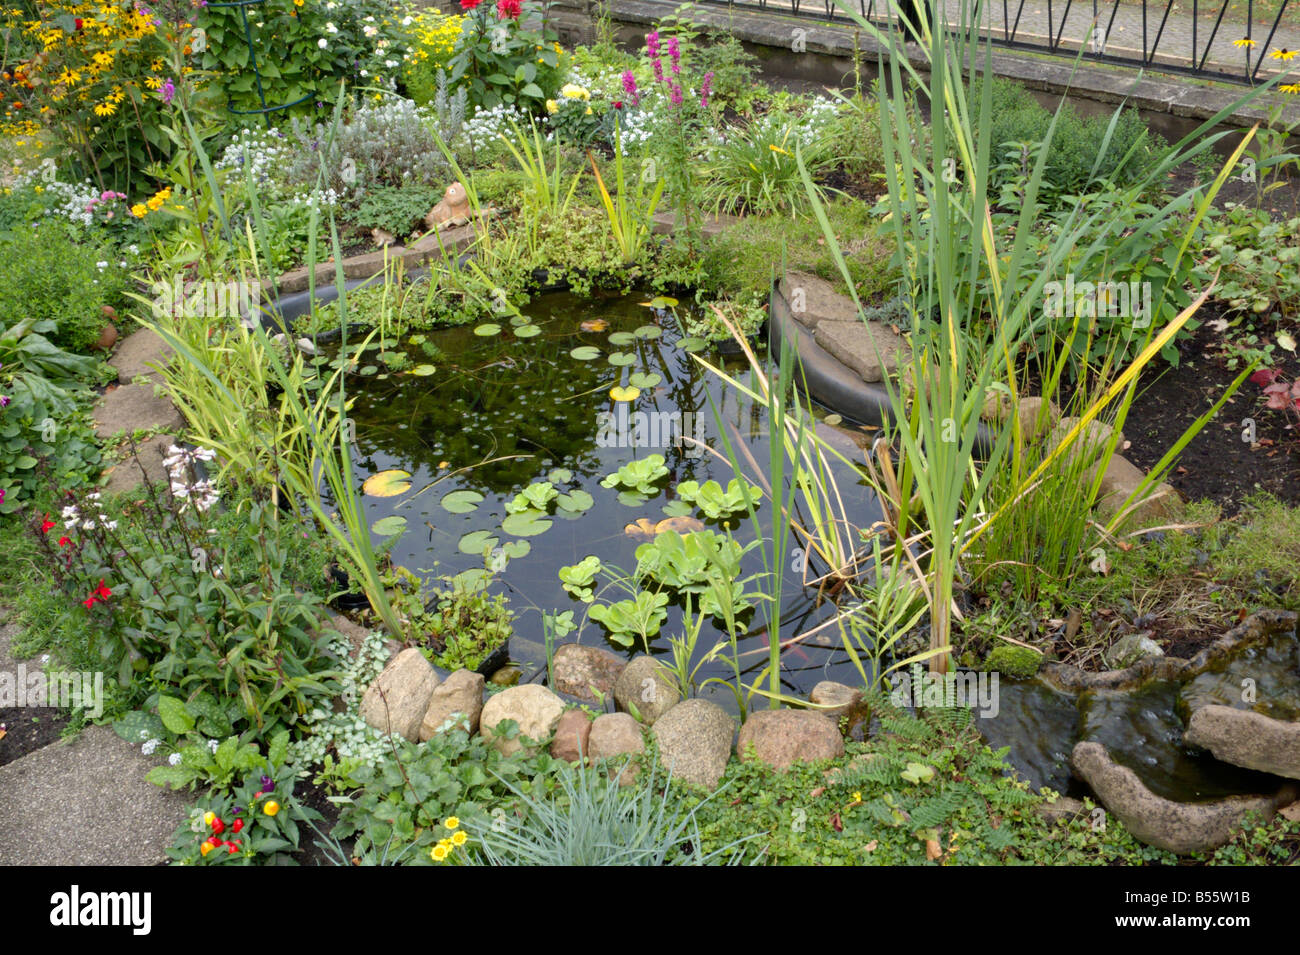 Charmant Small Garden Pond   Stock Image